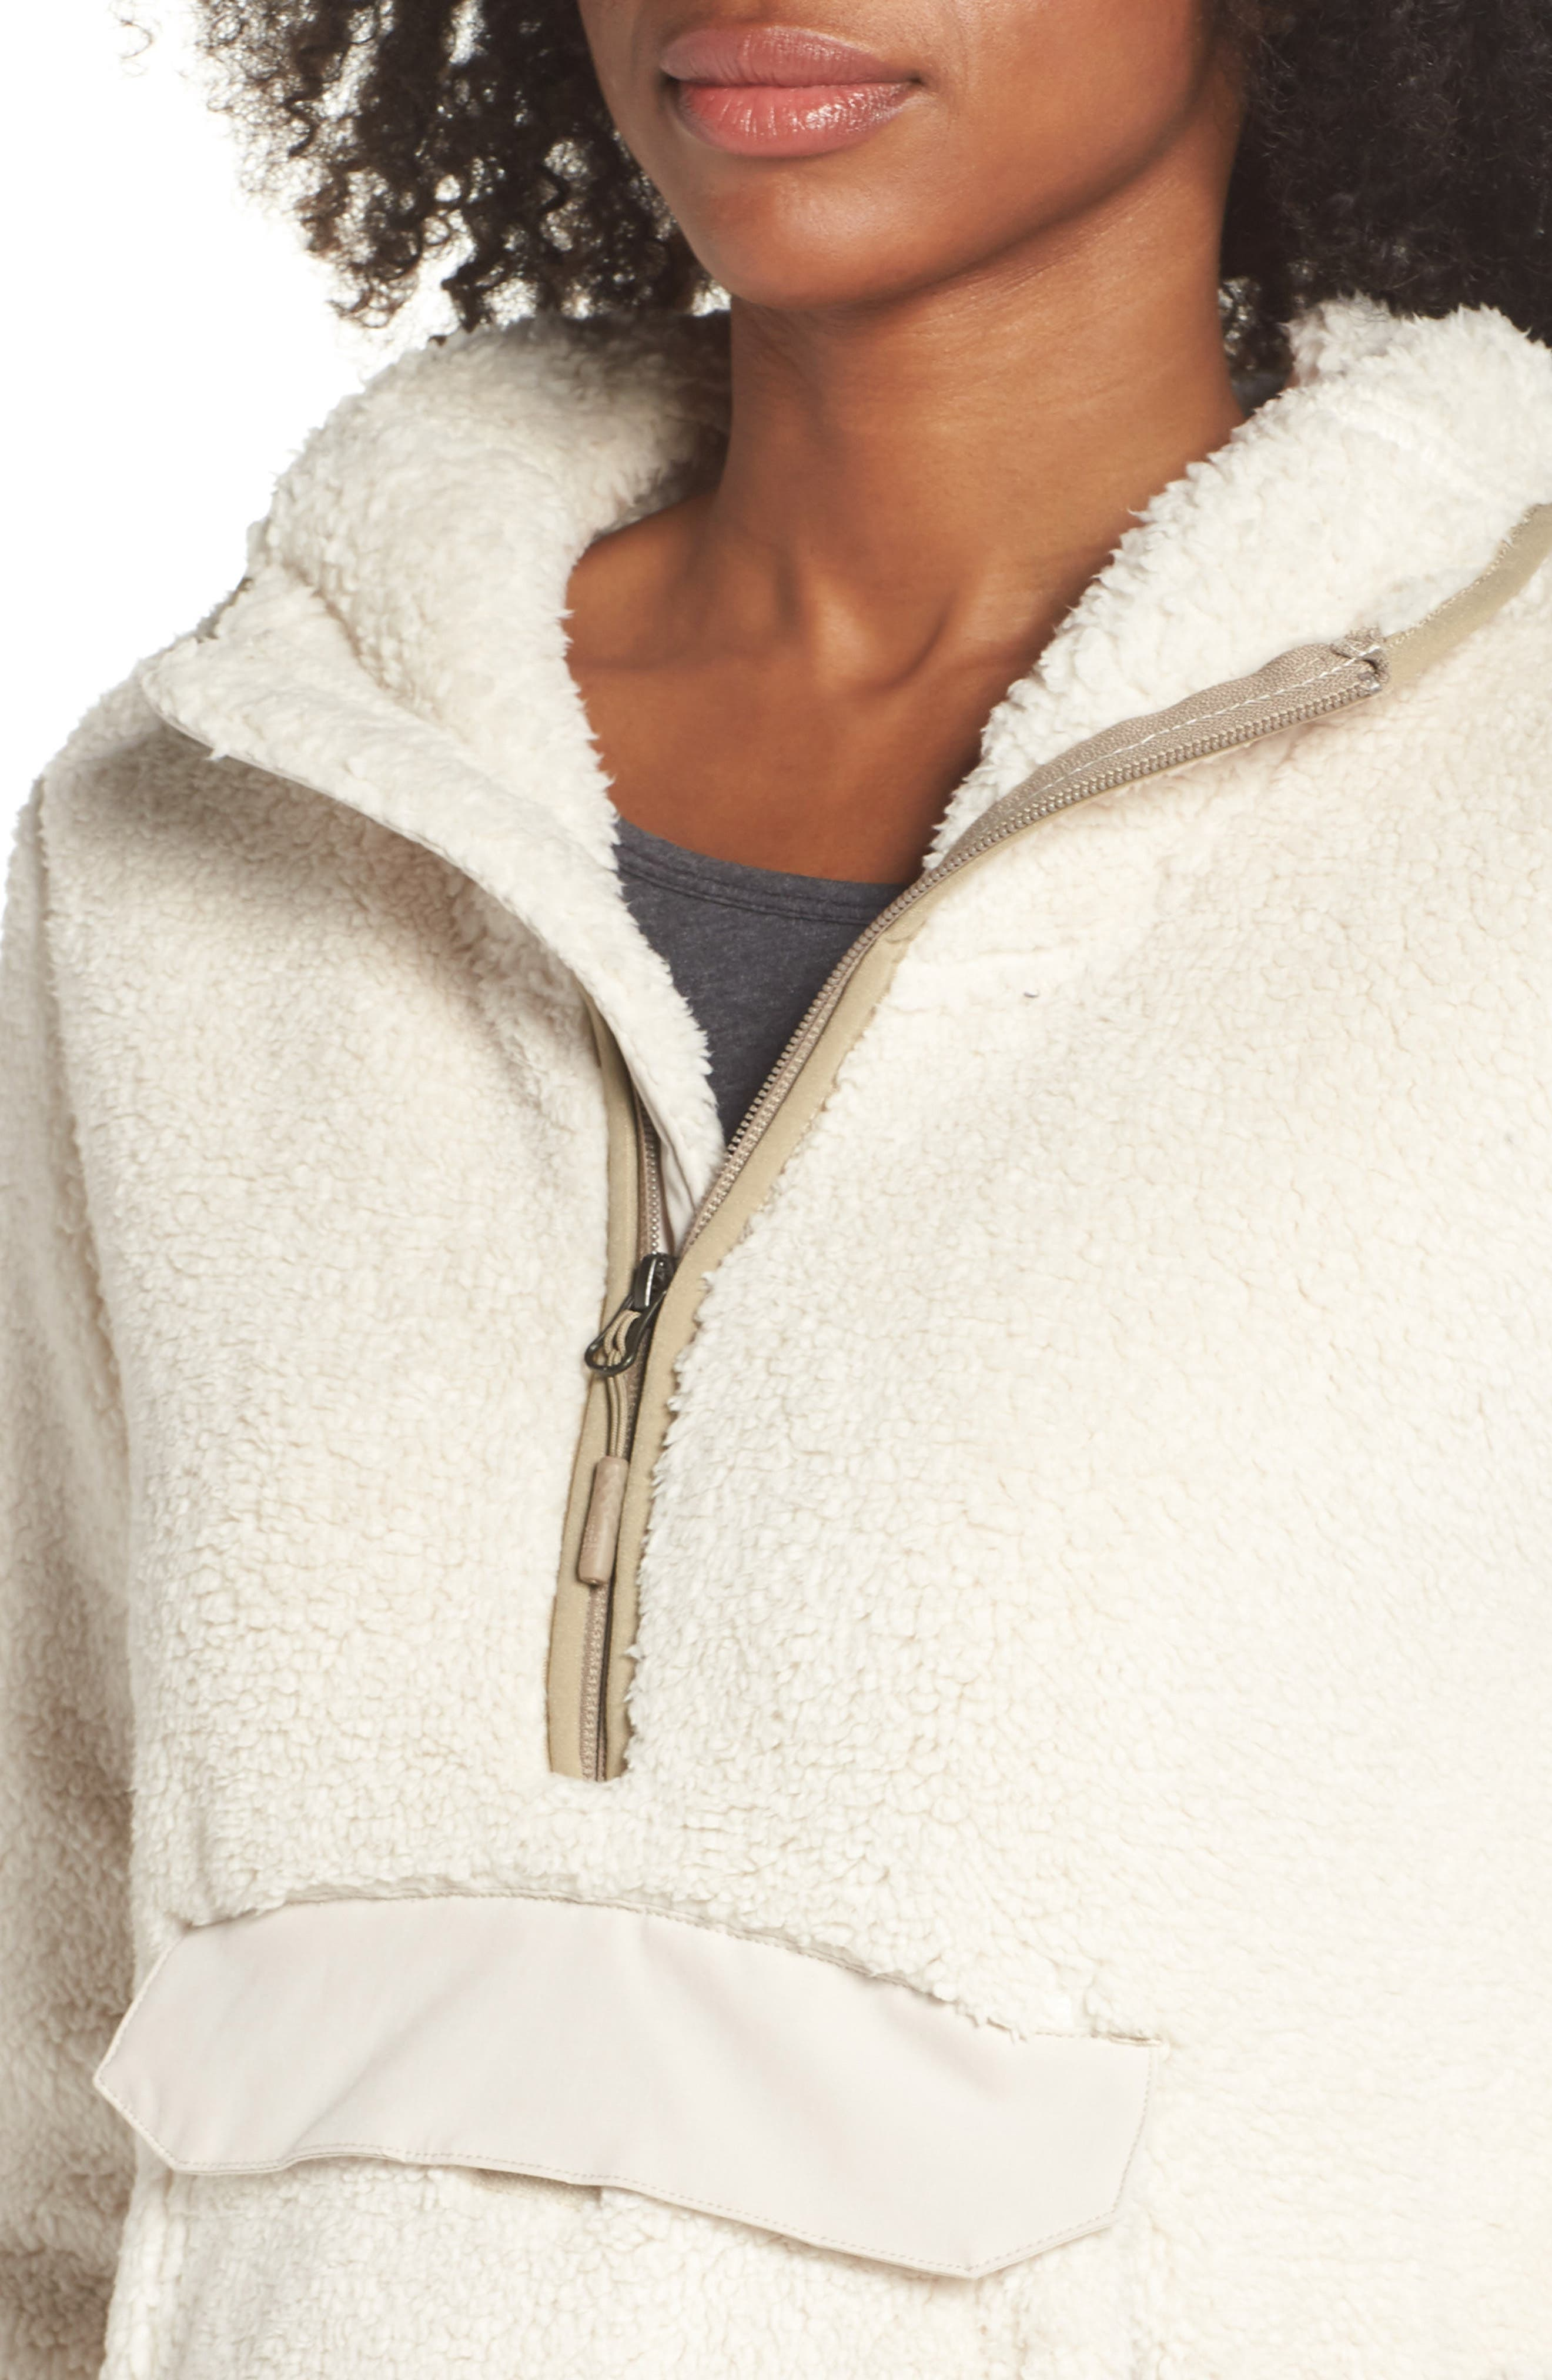 Campshire High Pile Fleece Pullover Hoodie,                             Alternate thumbnail 4, color,                             Vintage White/ Peyote Beige